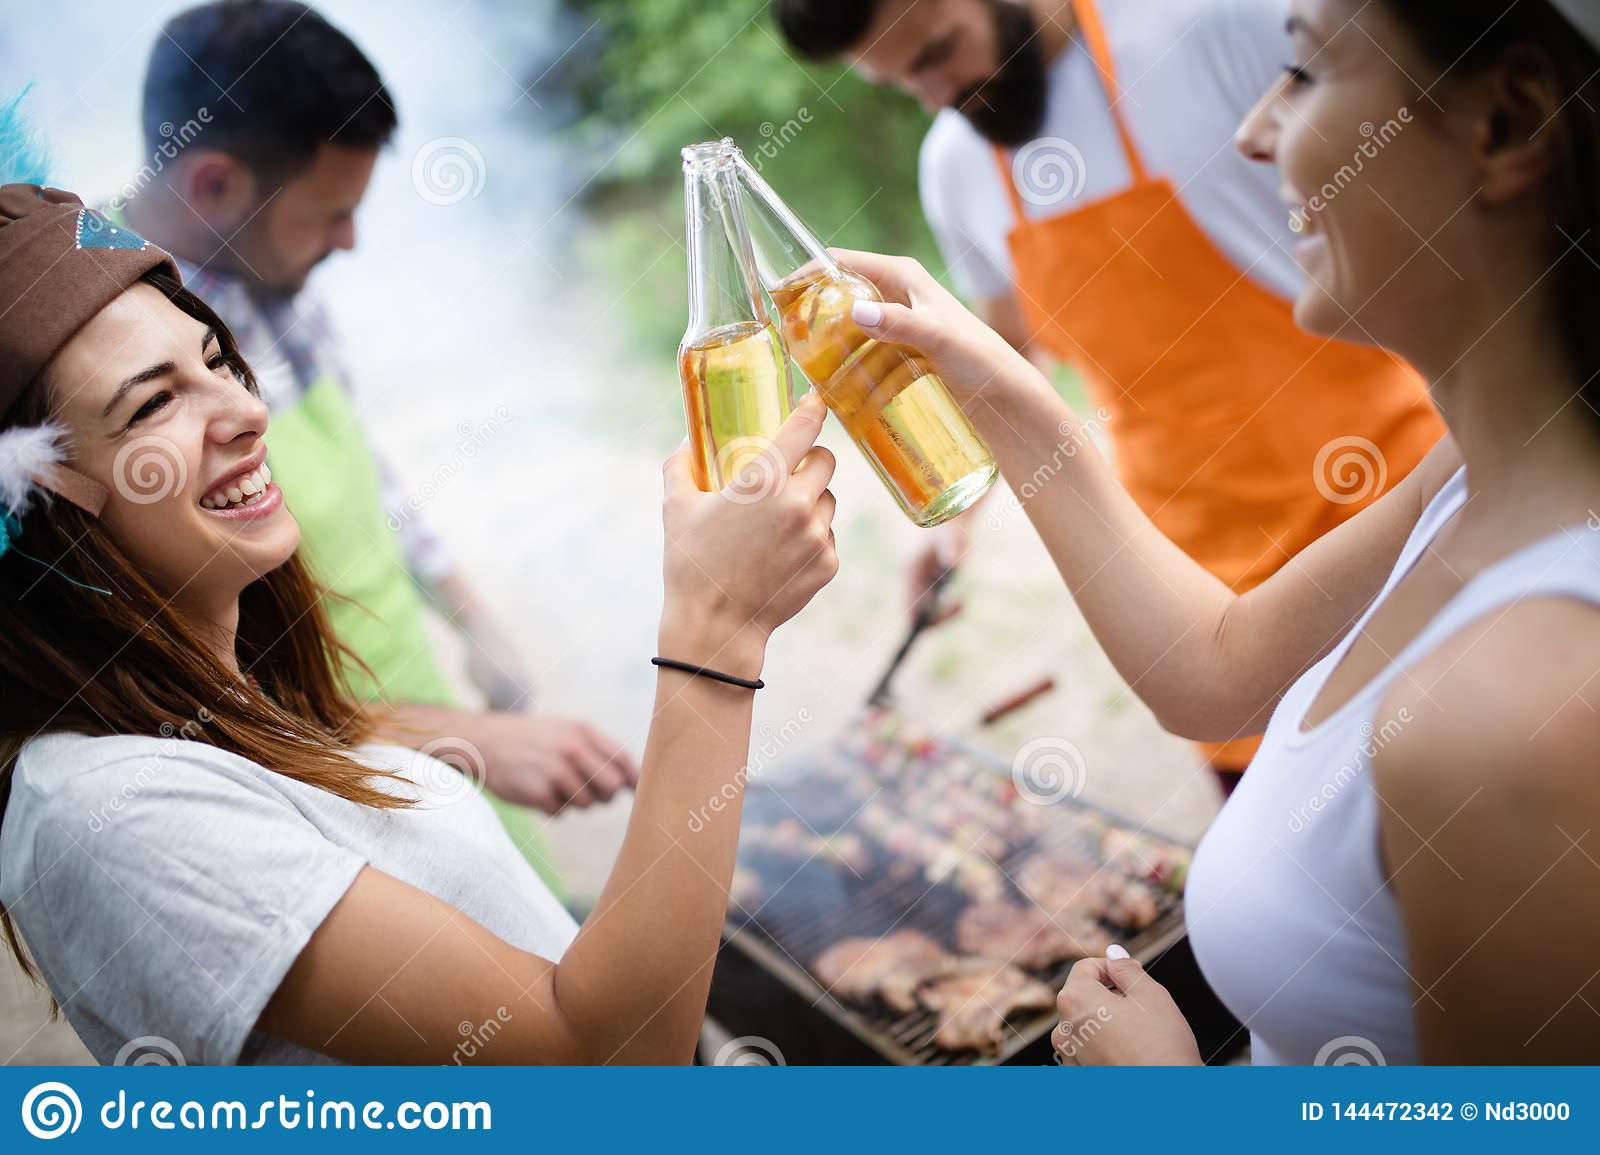 Group of friends having a picnic in a park outdoor. Happy young people enjoying bbq